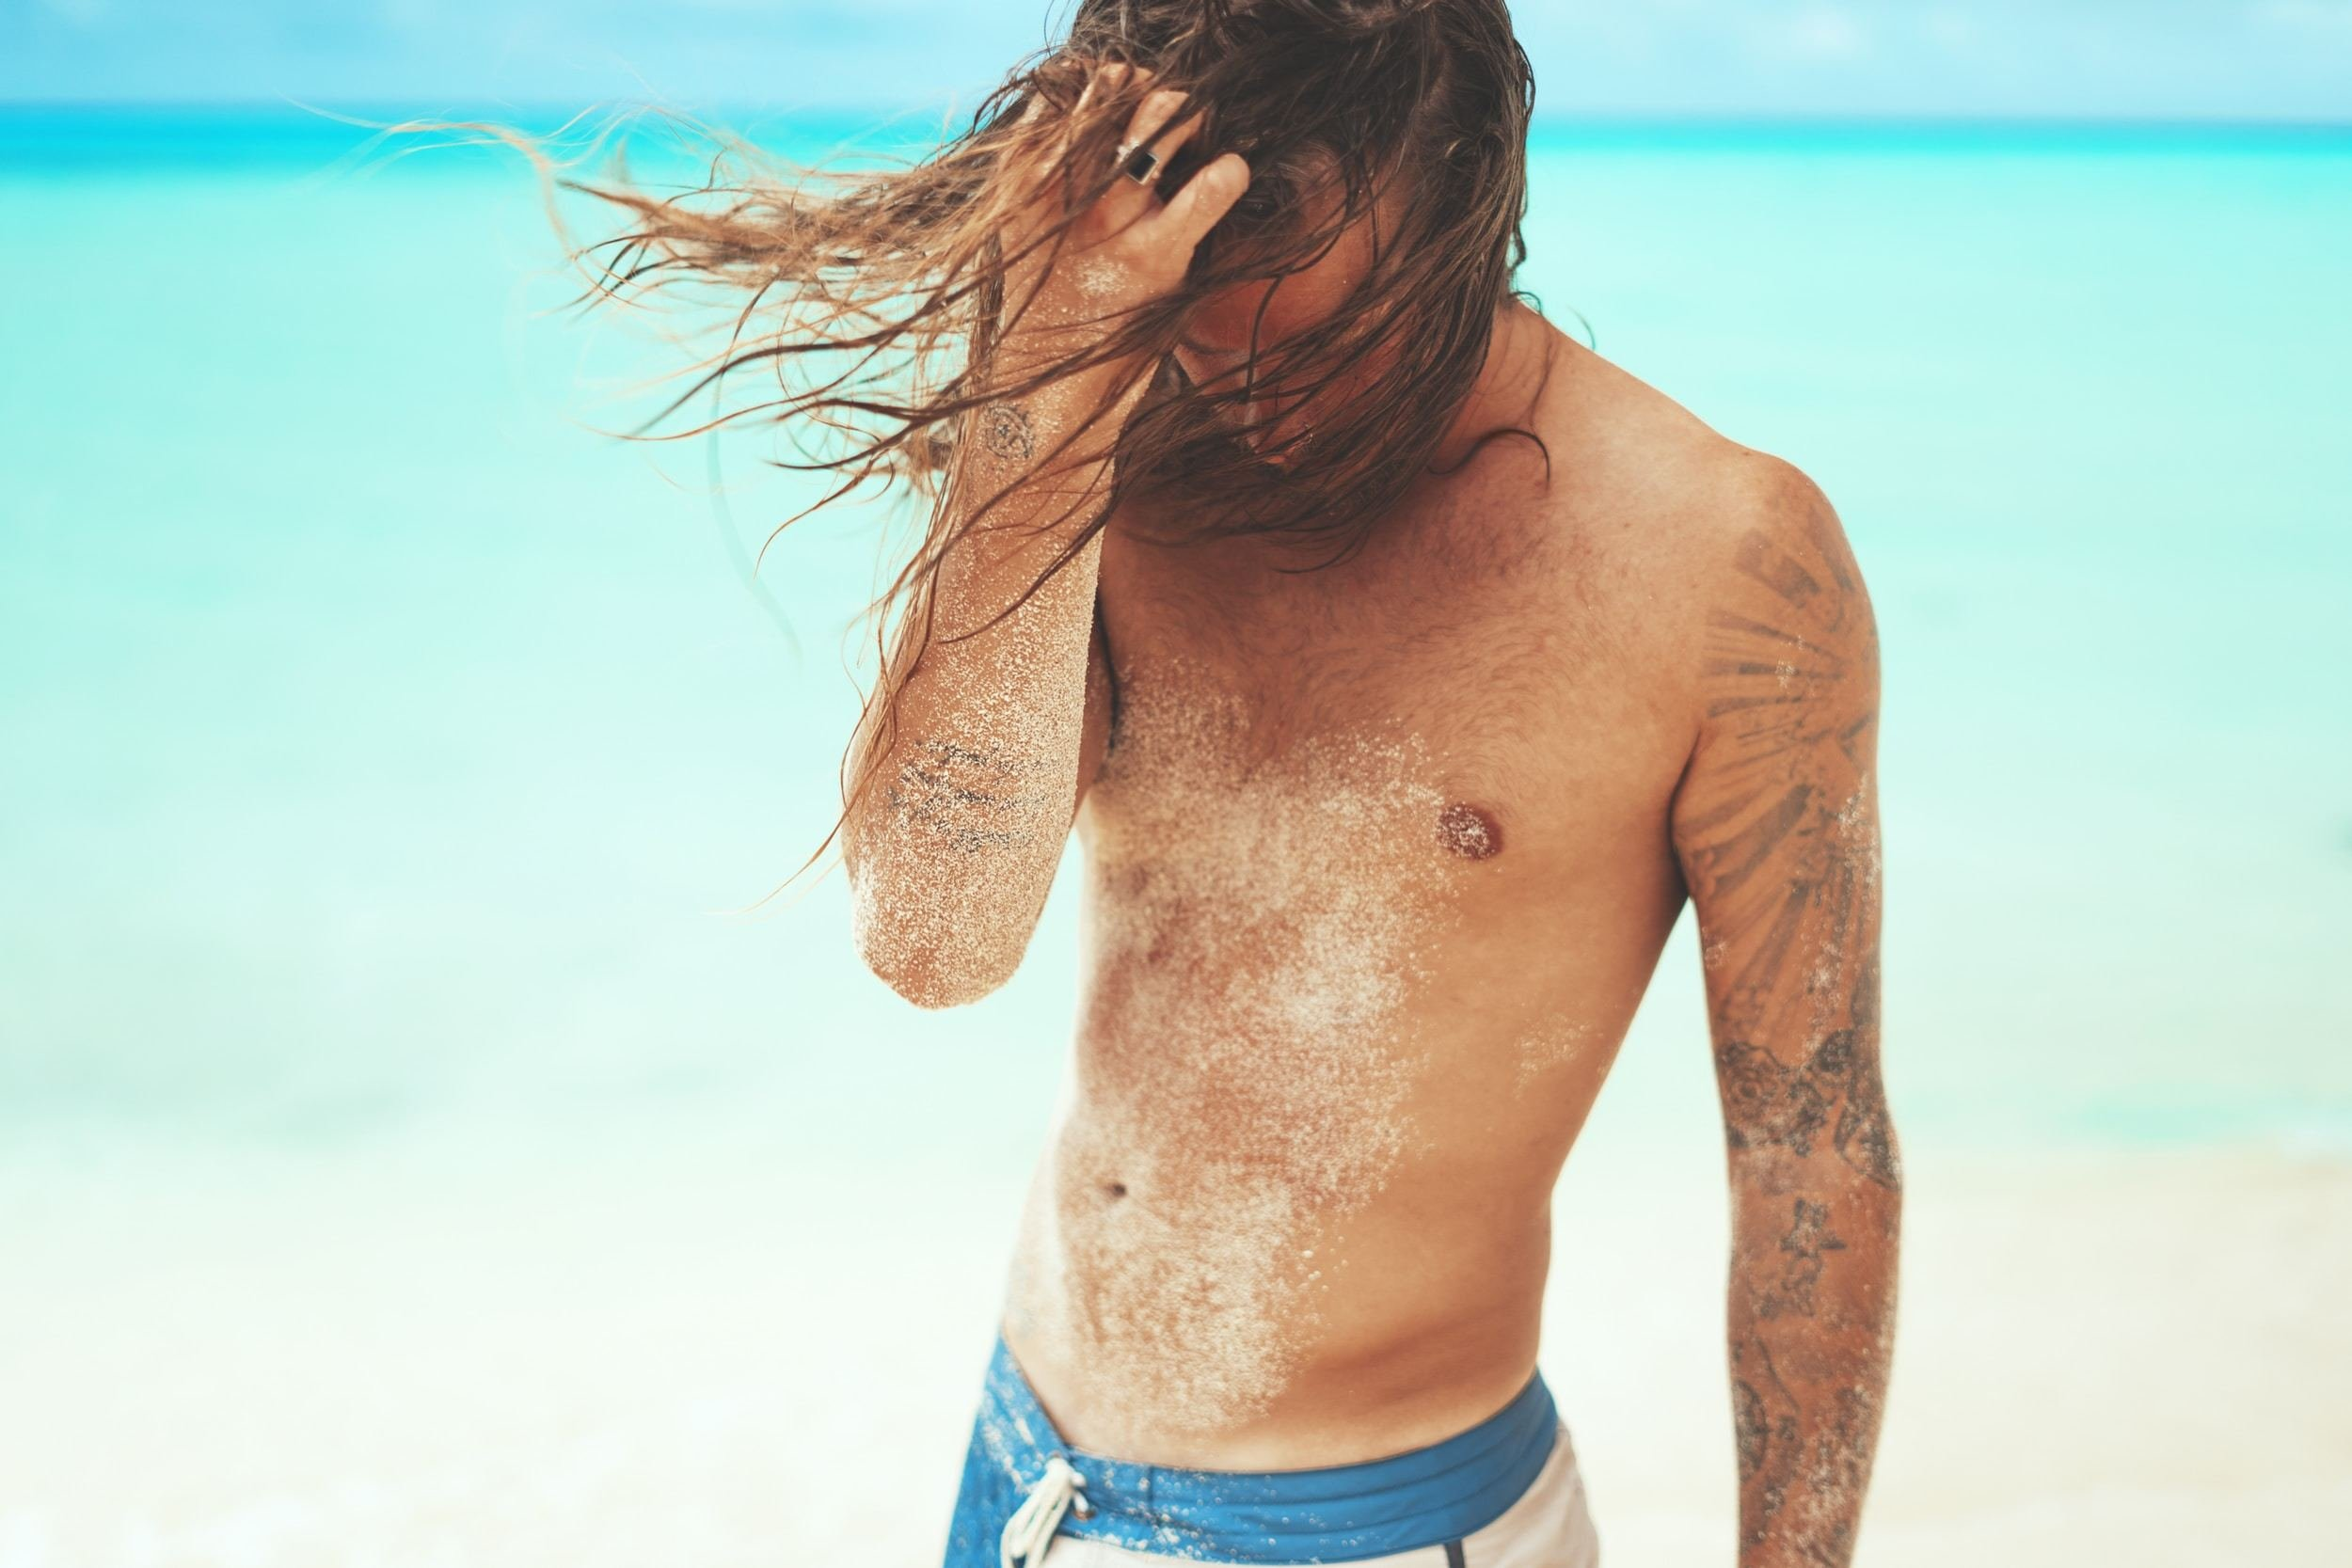 What do people think of long hair on men?